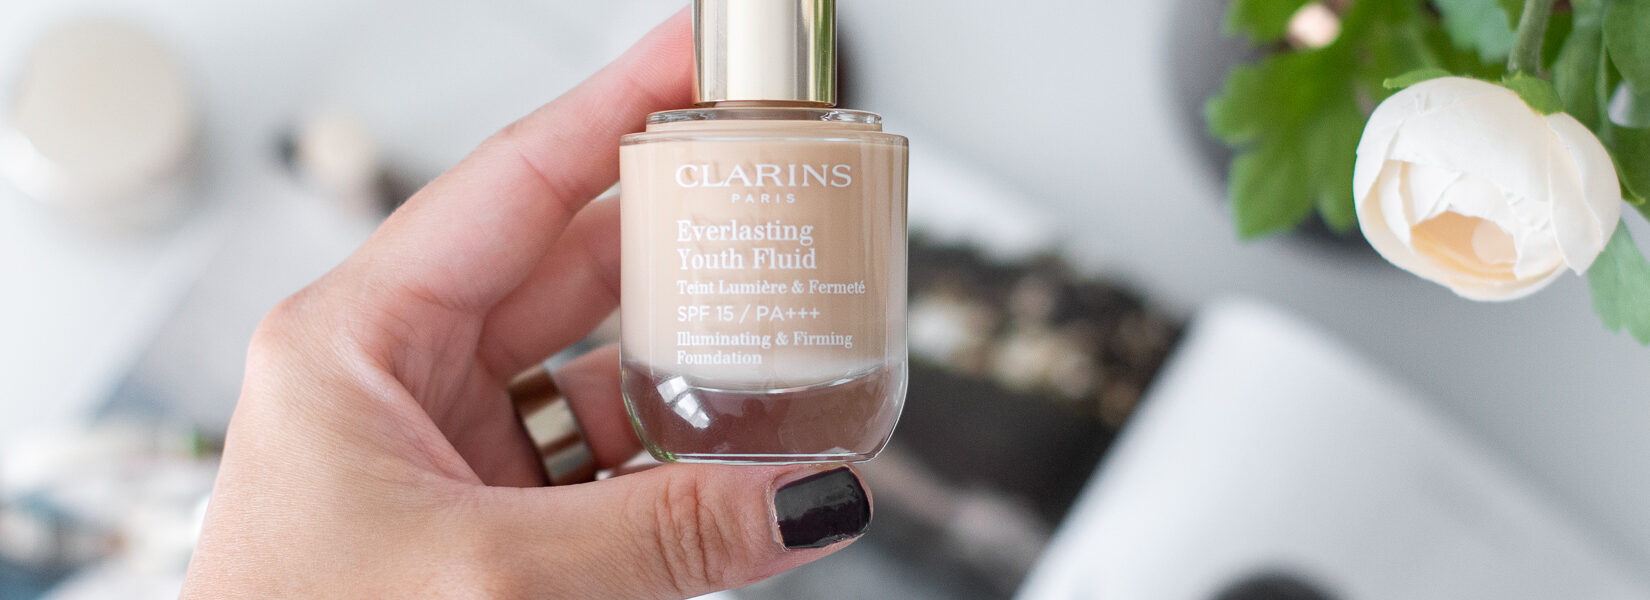 MAKEUP TALK! Clarins Everlasting Youth Fluid makeup || recenze